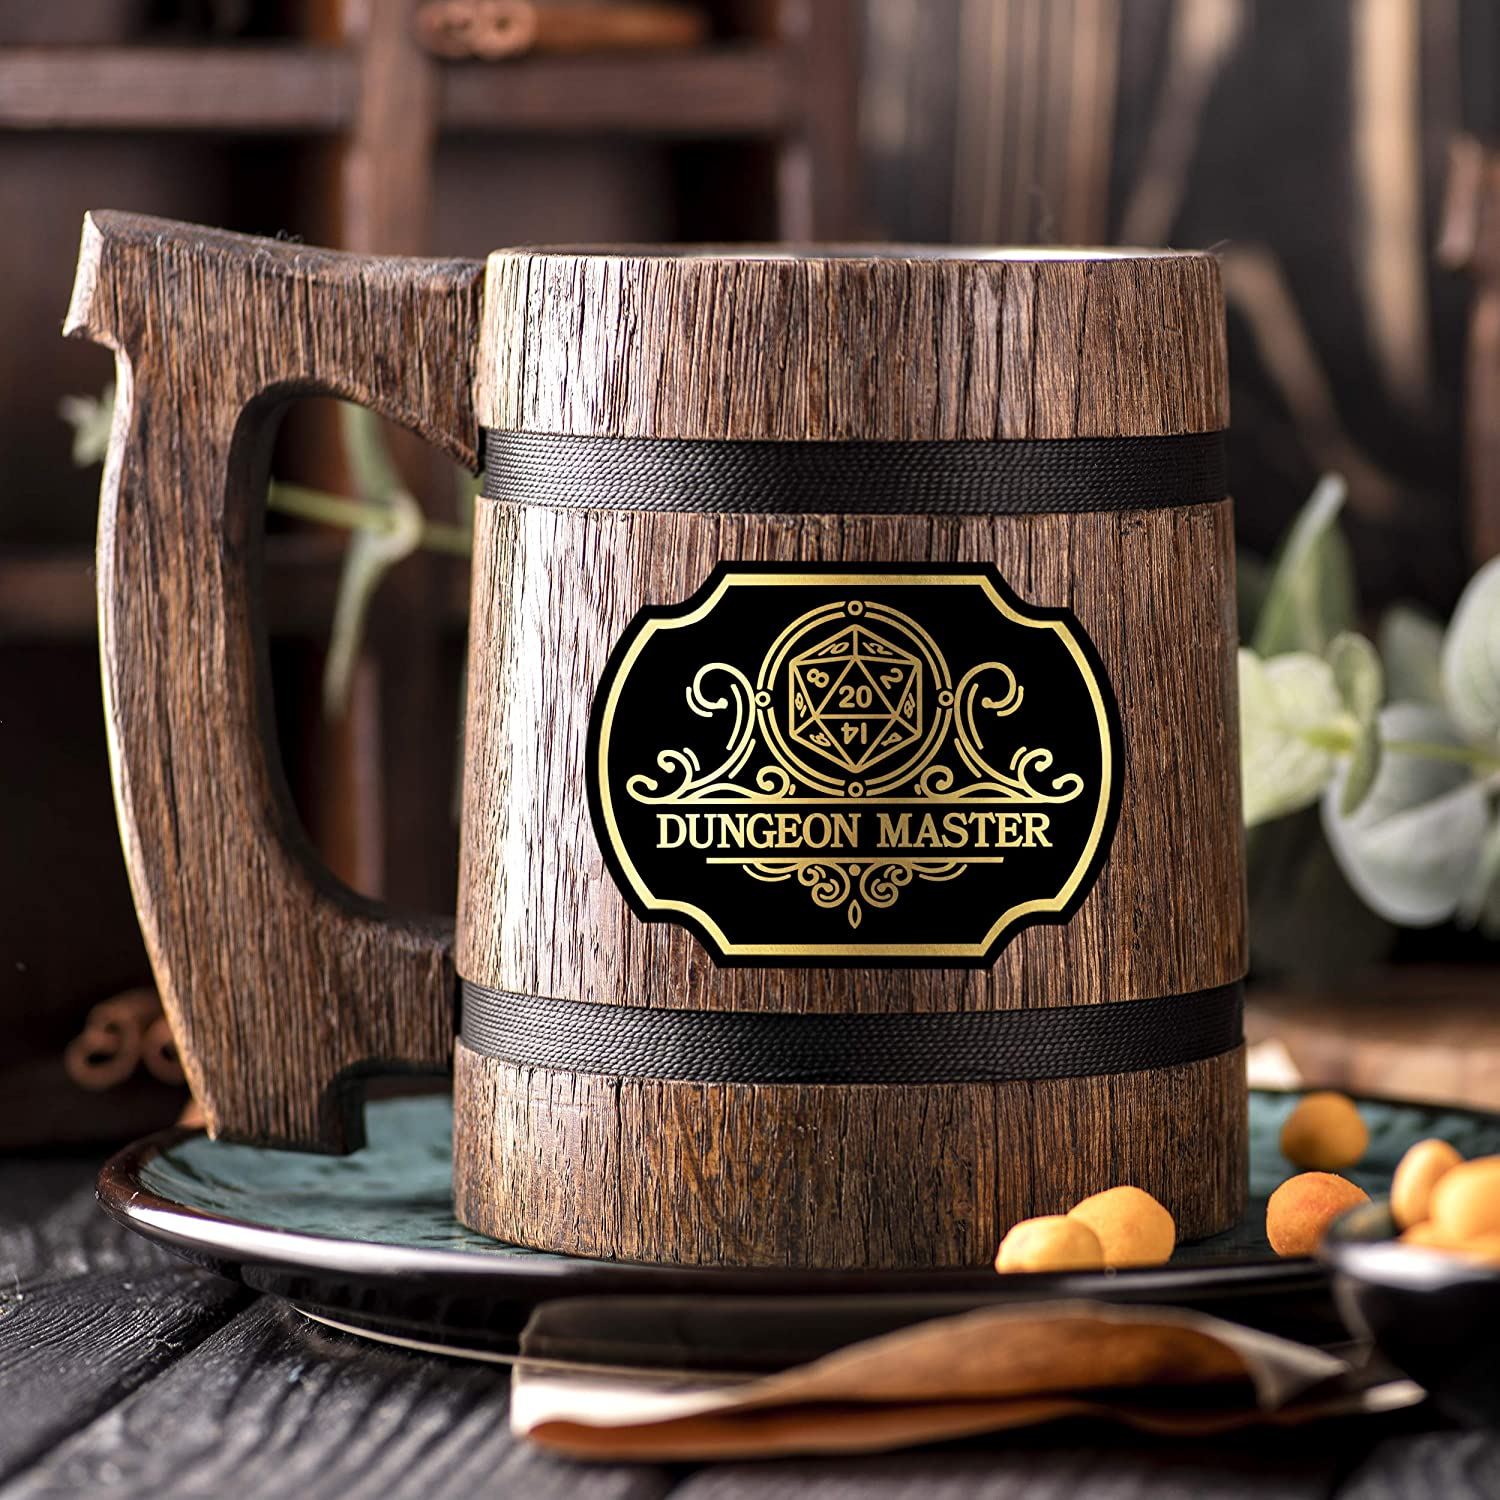 Dungeon Master Beer and Dragons Mug. Max 69% OFF Cheap sale